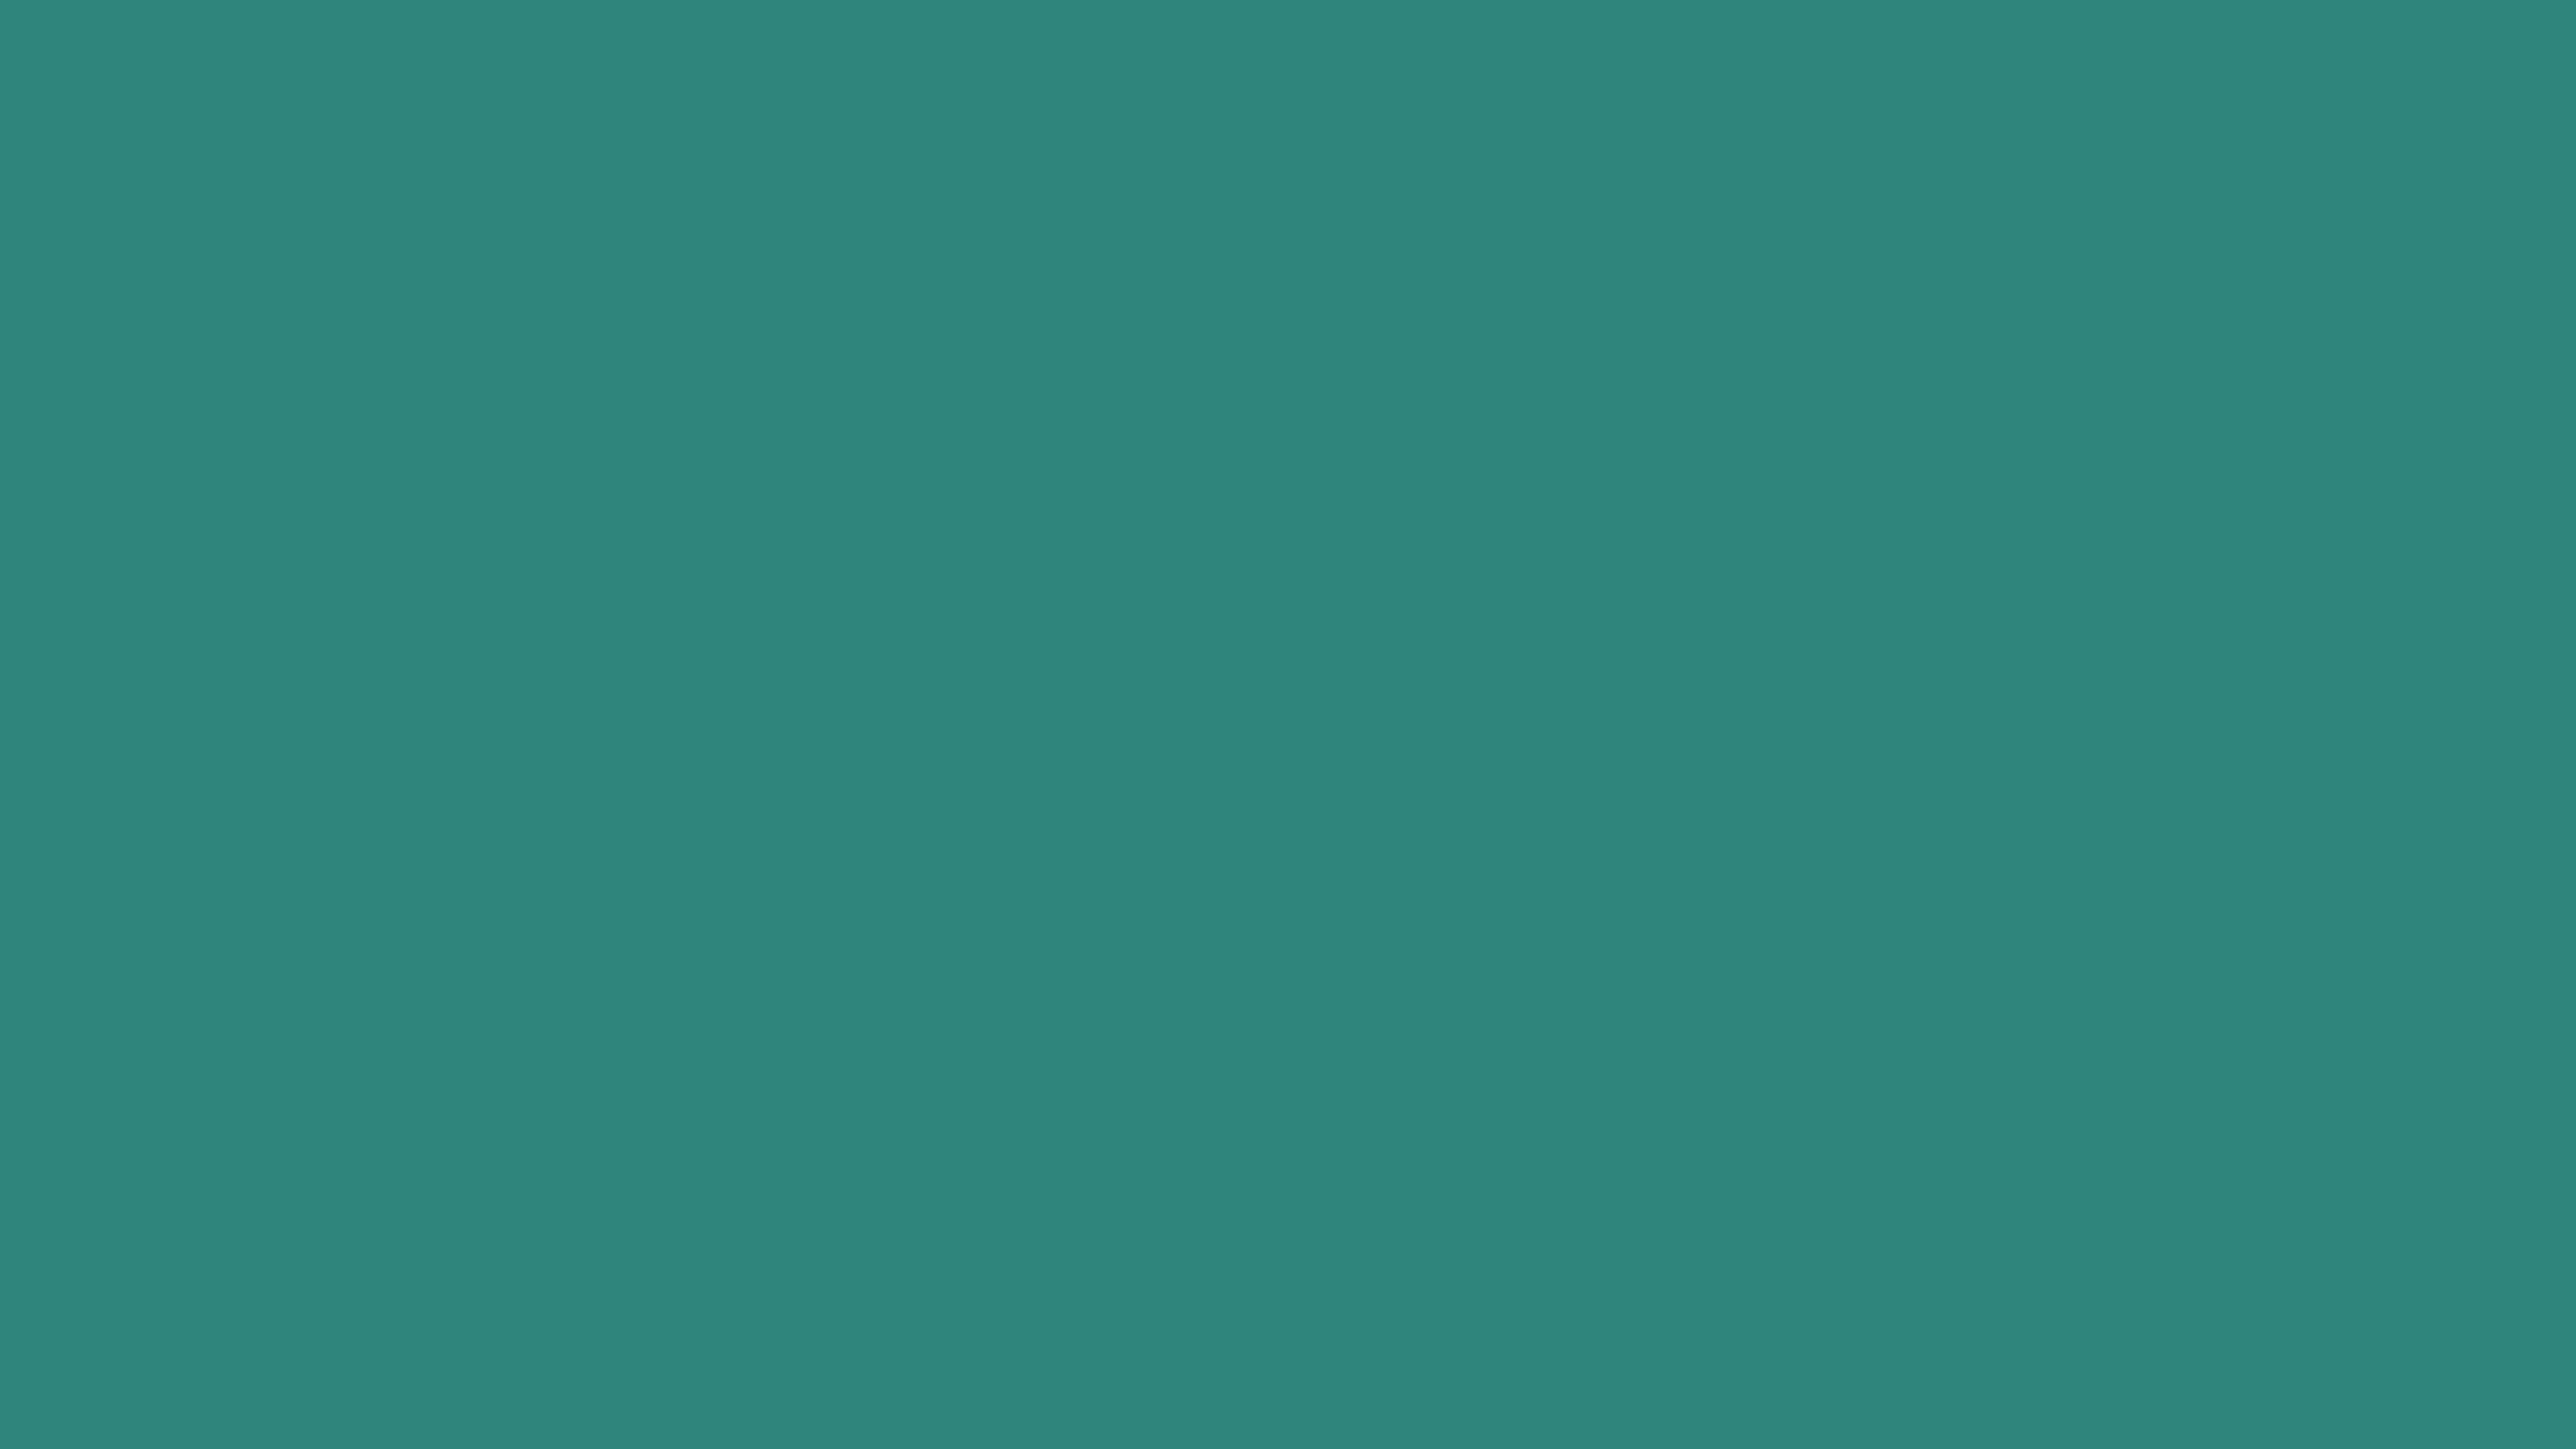 5120x2880 Celadon Green Solid Color Background